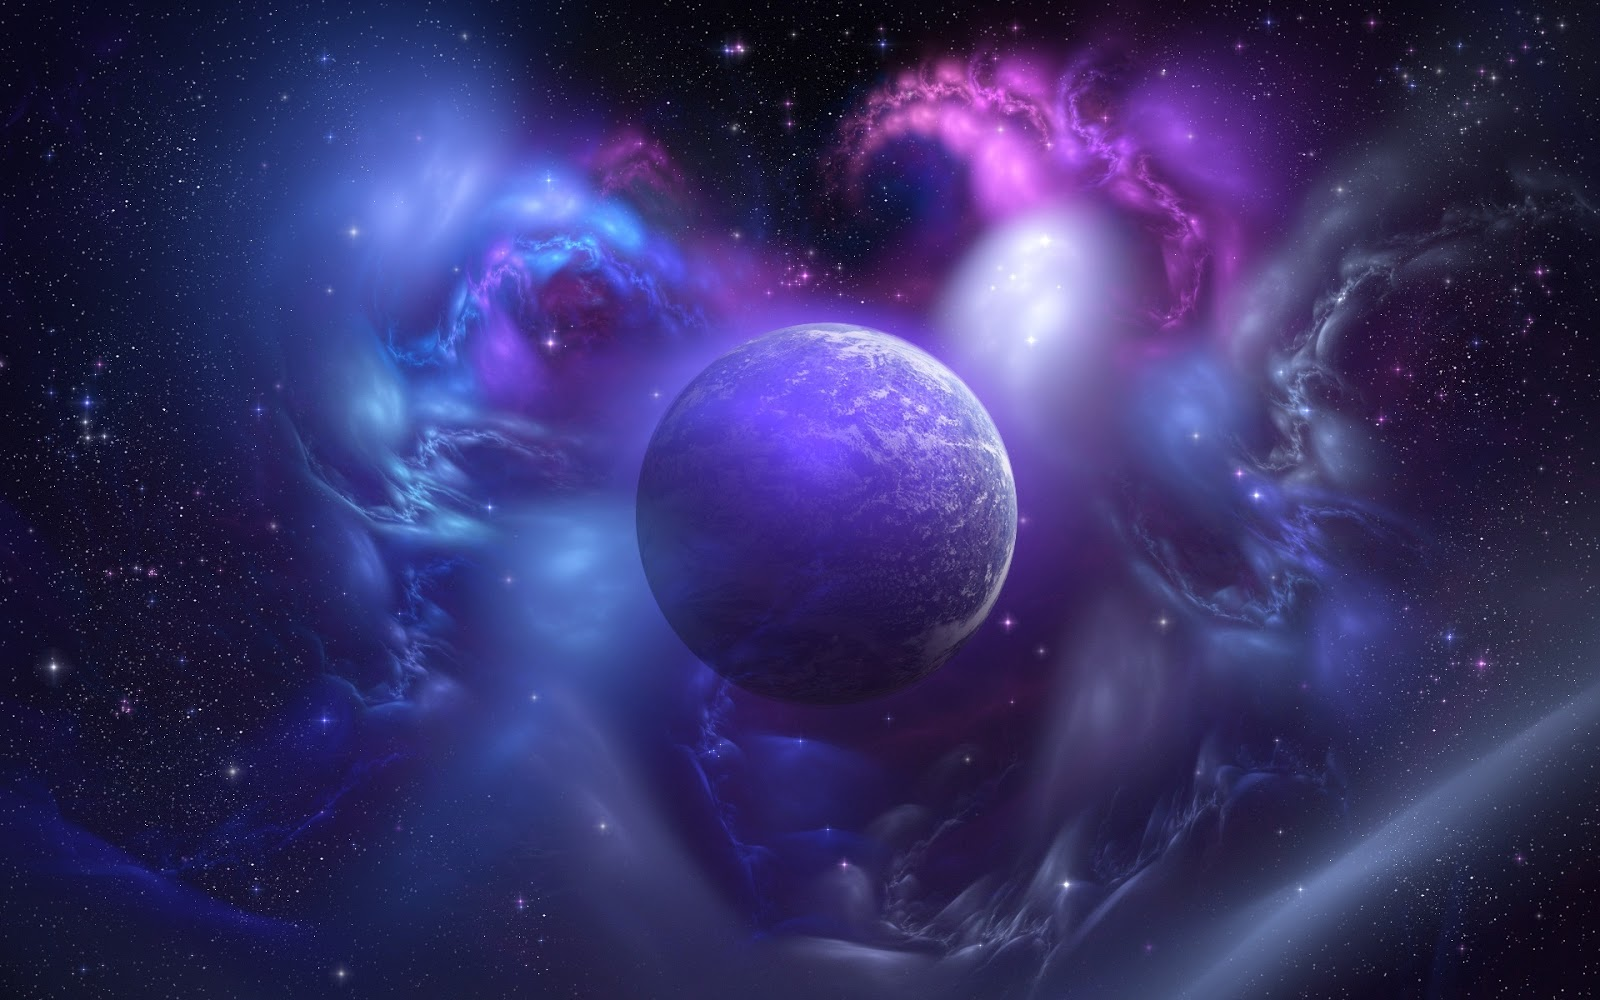 Download image Hd Space Backgrounds For Windows 8 PC, Android, iPhone ...